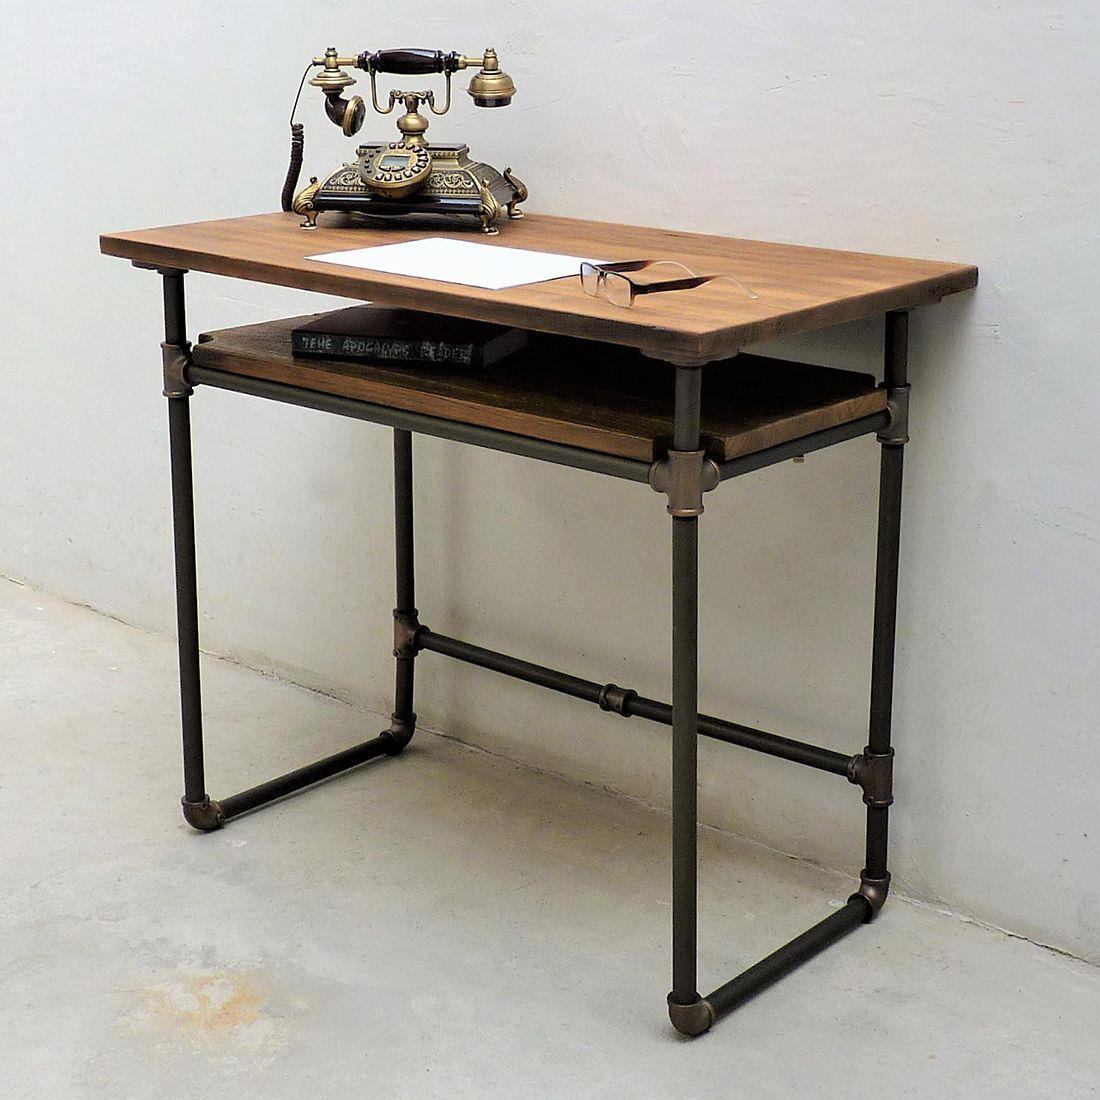 Berkeley Industrial Mid-Century Desk